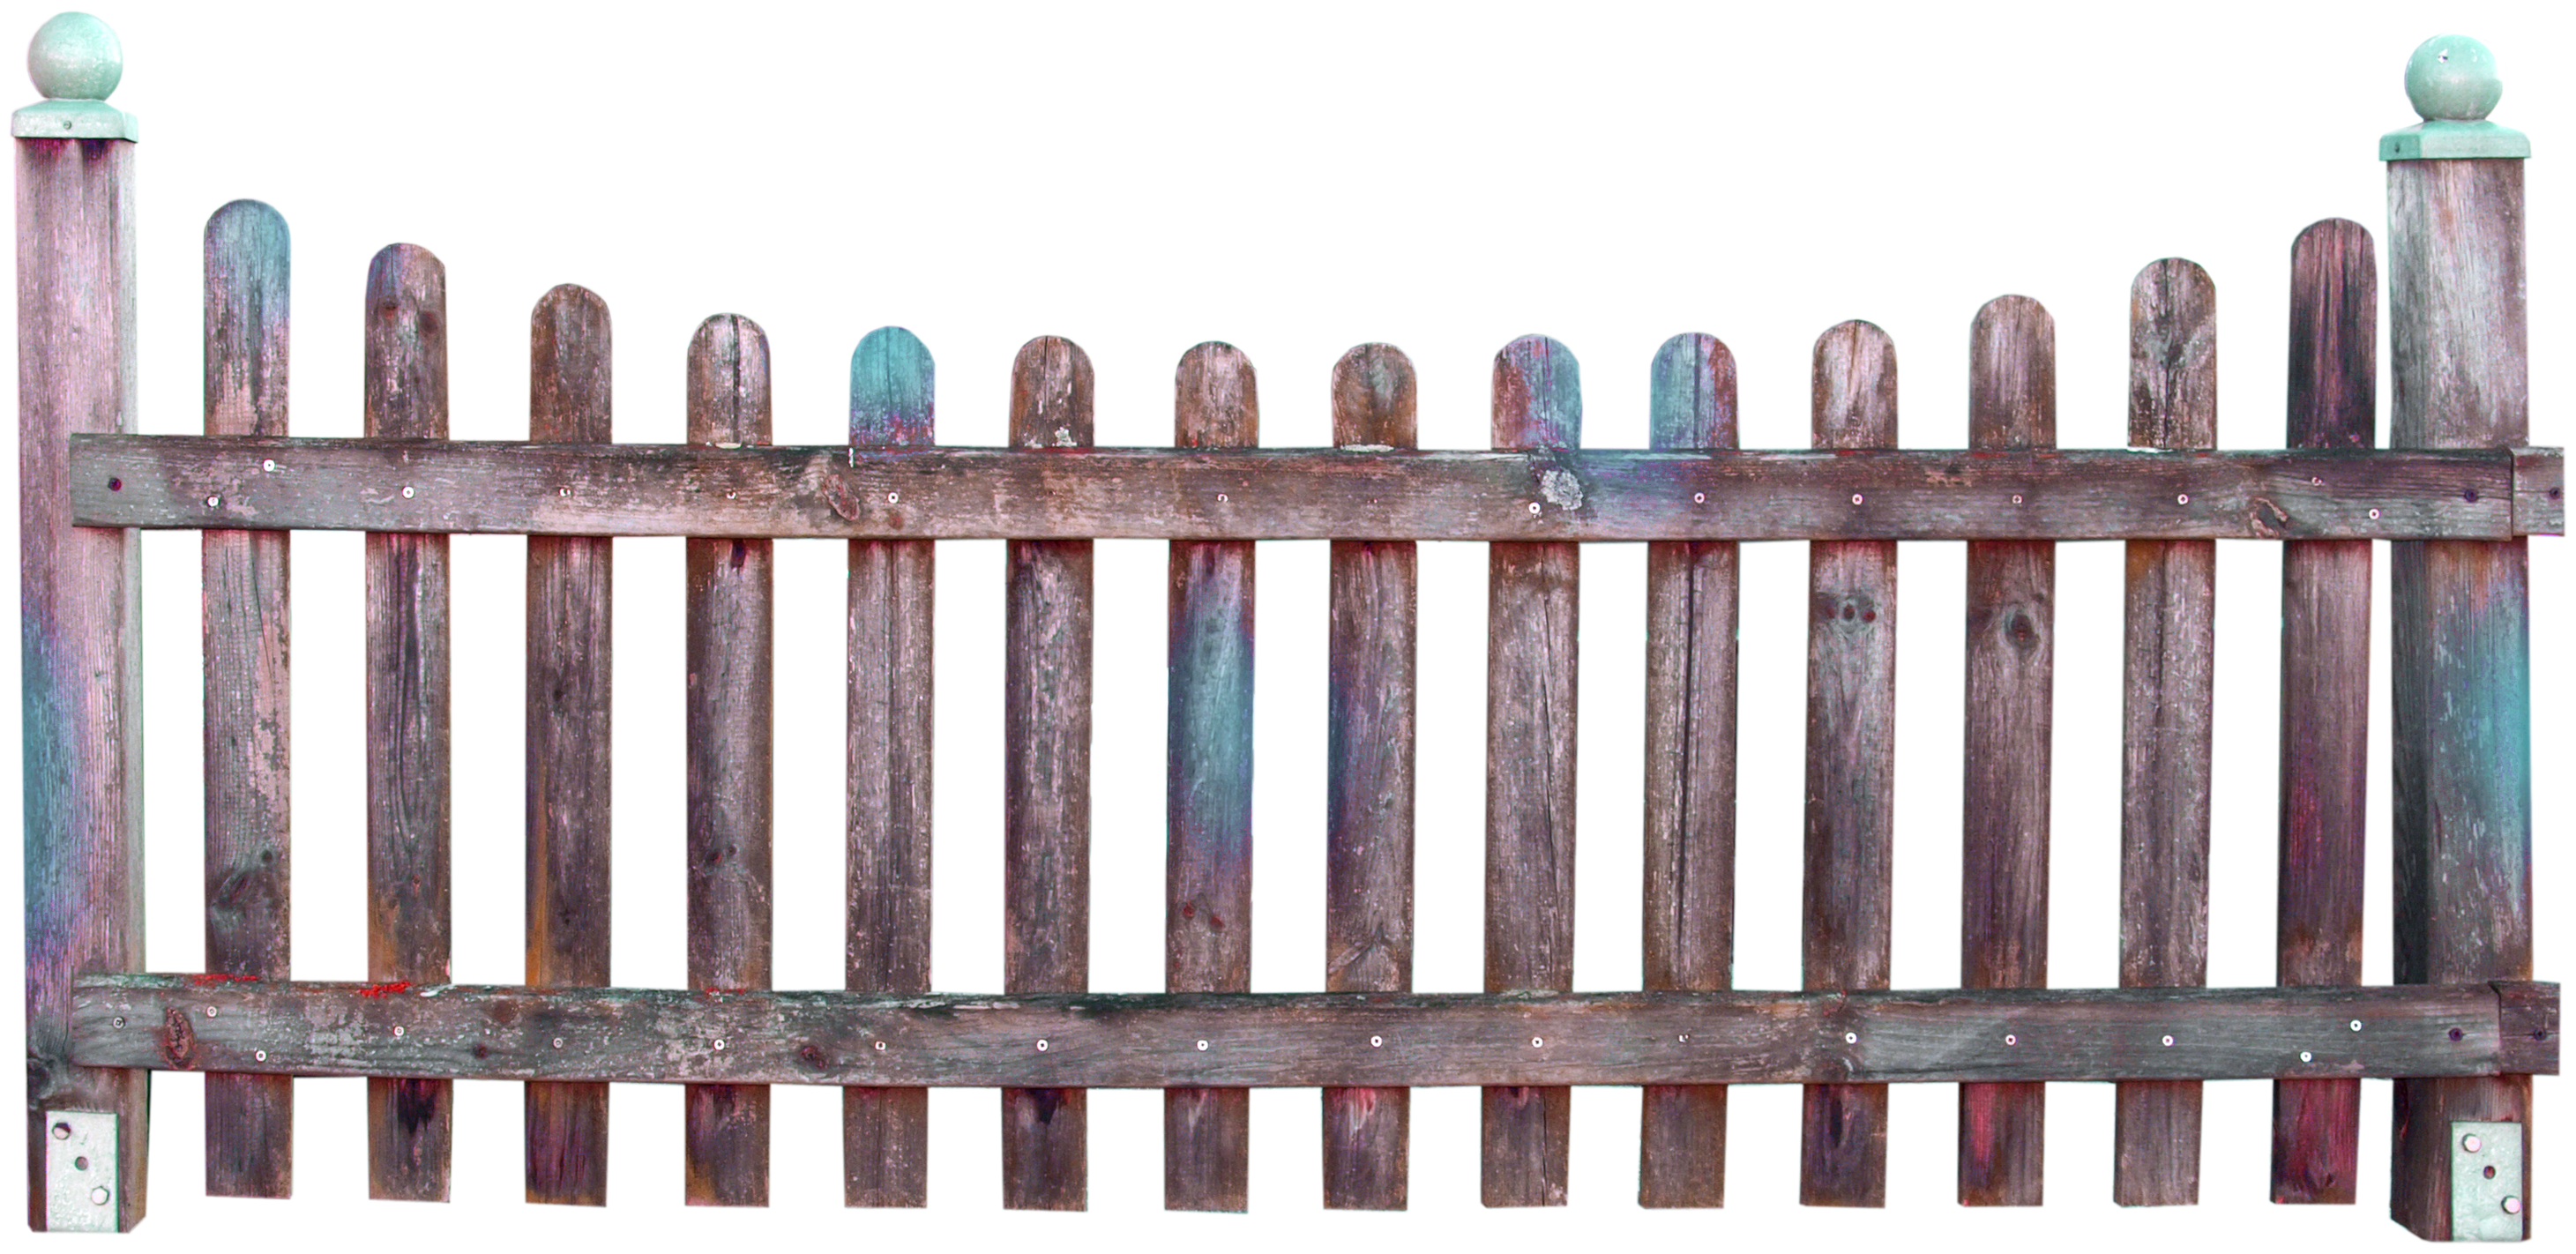 Garden clip art material. Fencing clipart old fence